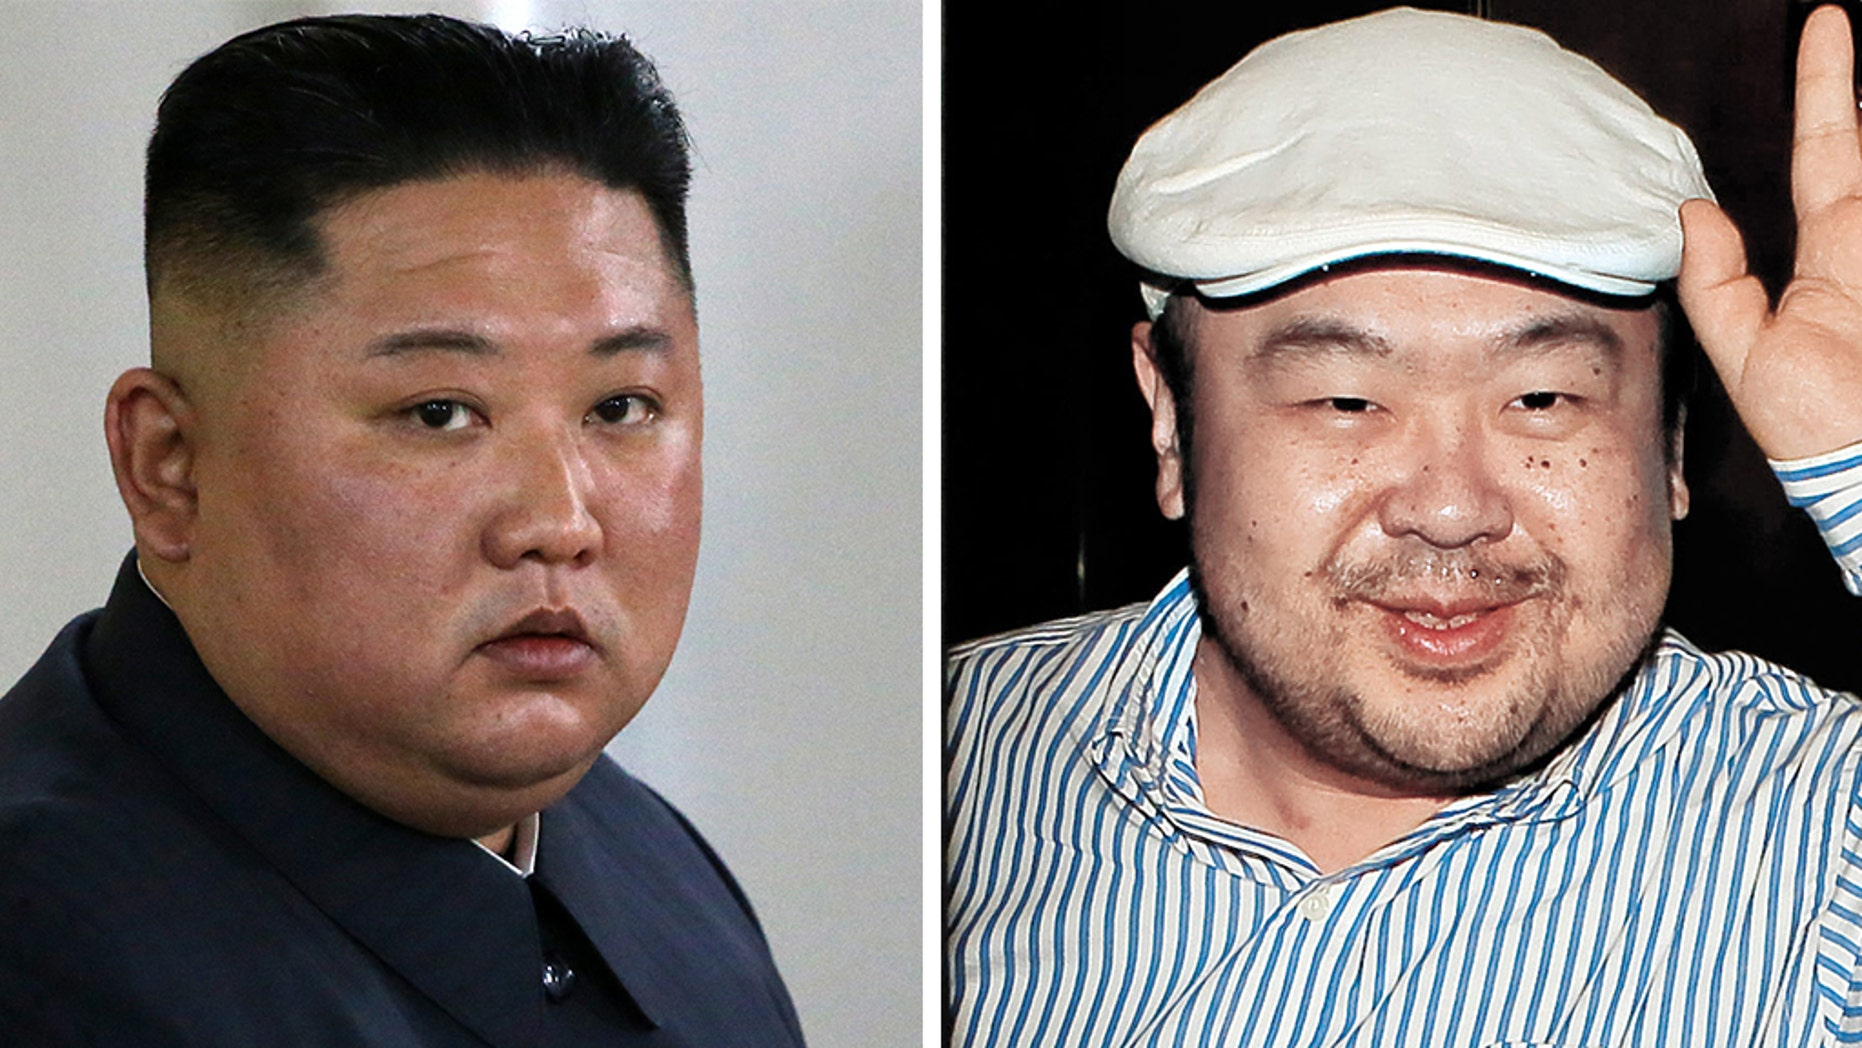 Kim Jong-Un's Half-Brother Was An Informant For The CIA